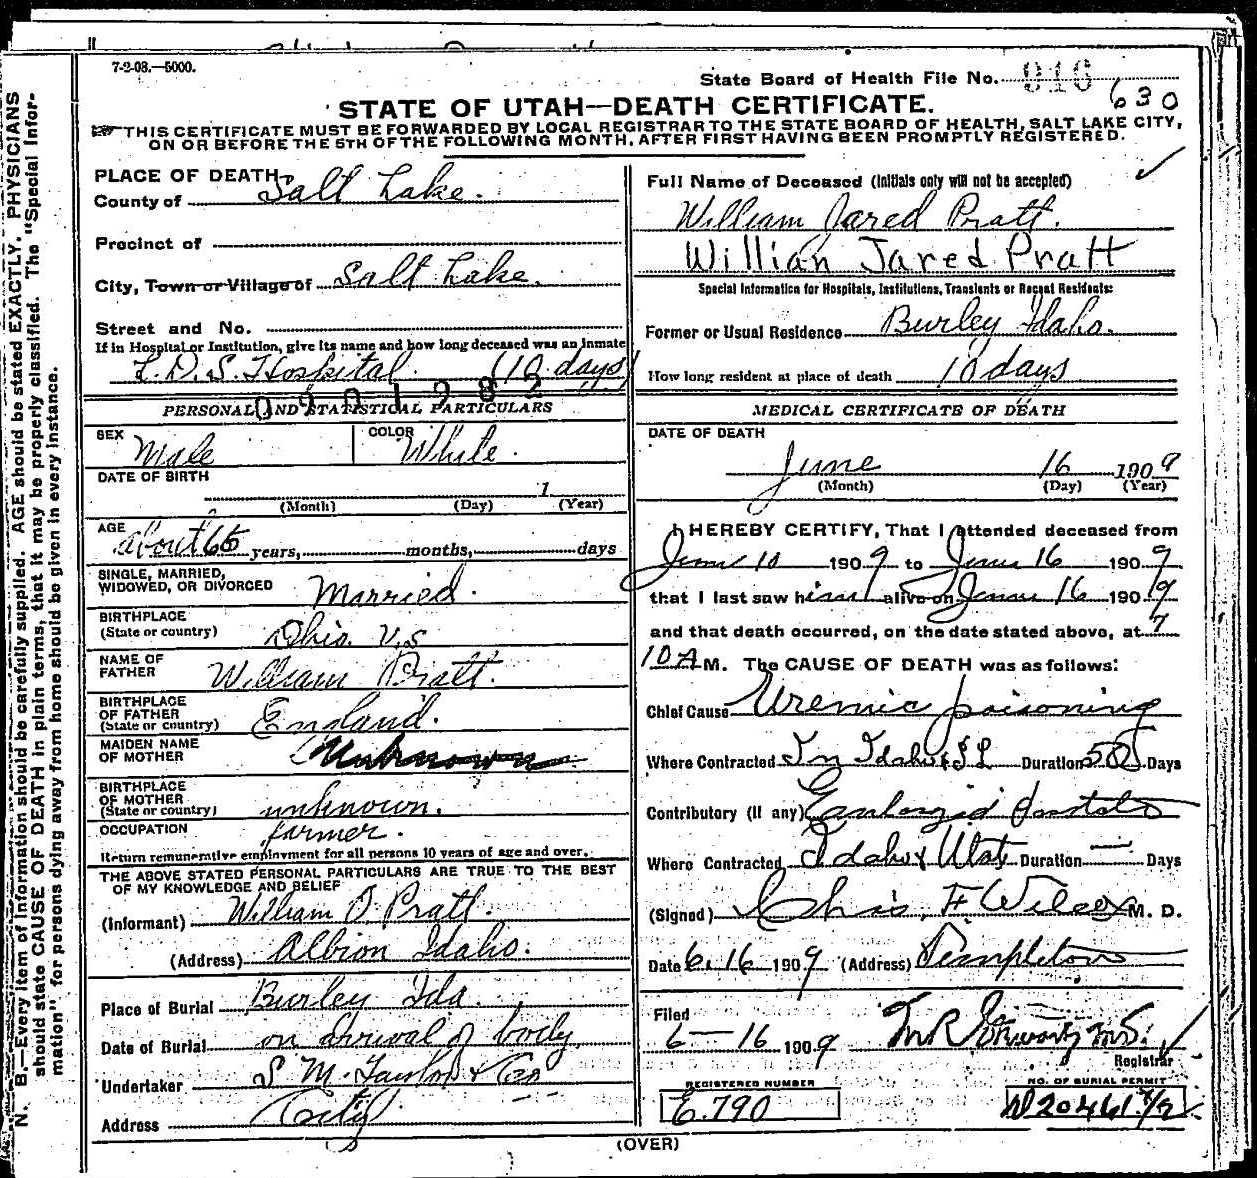 William jared pratt death certificate death certificate of william jared pratt 1betcityfo Choice Image